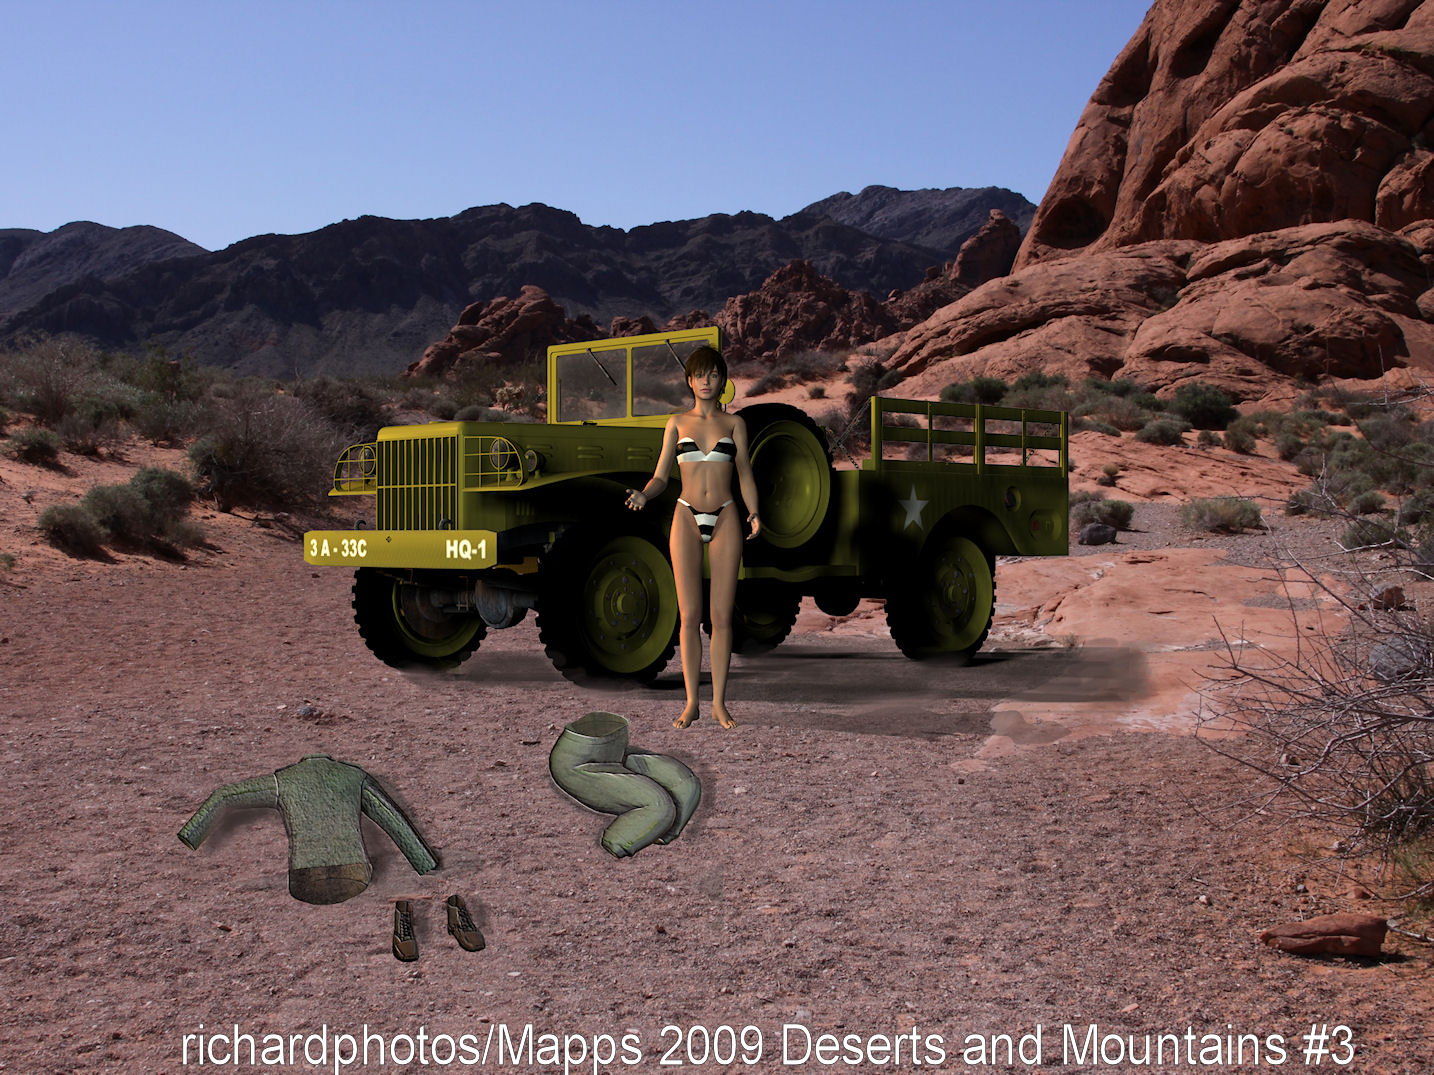 Deserts and Mountains